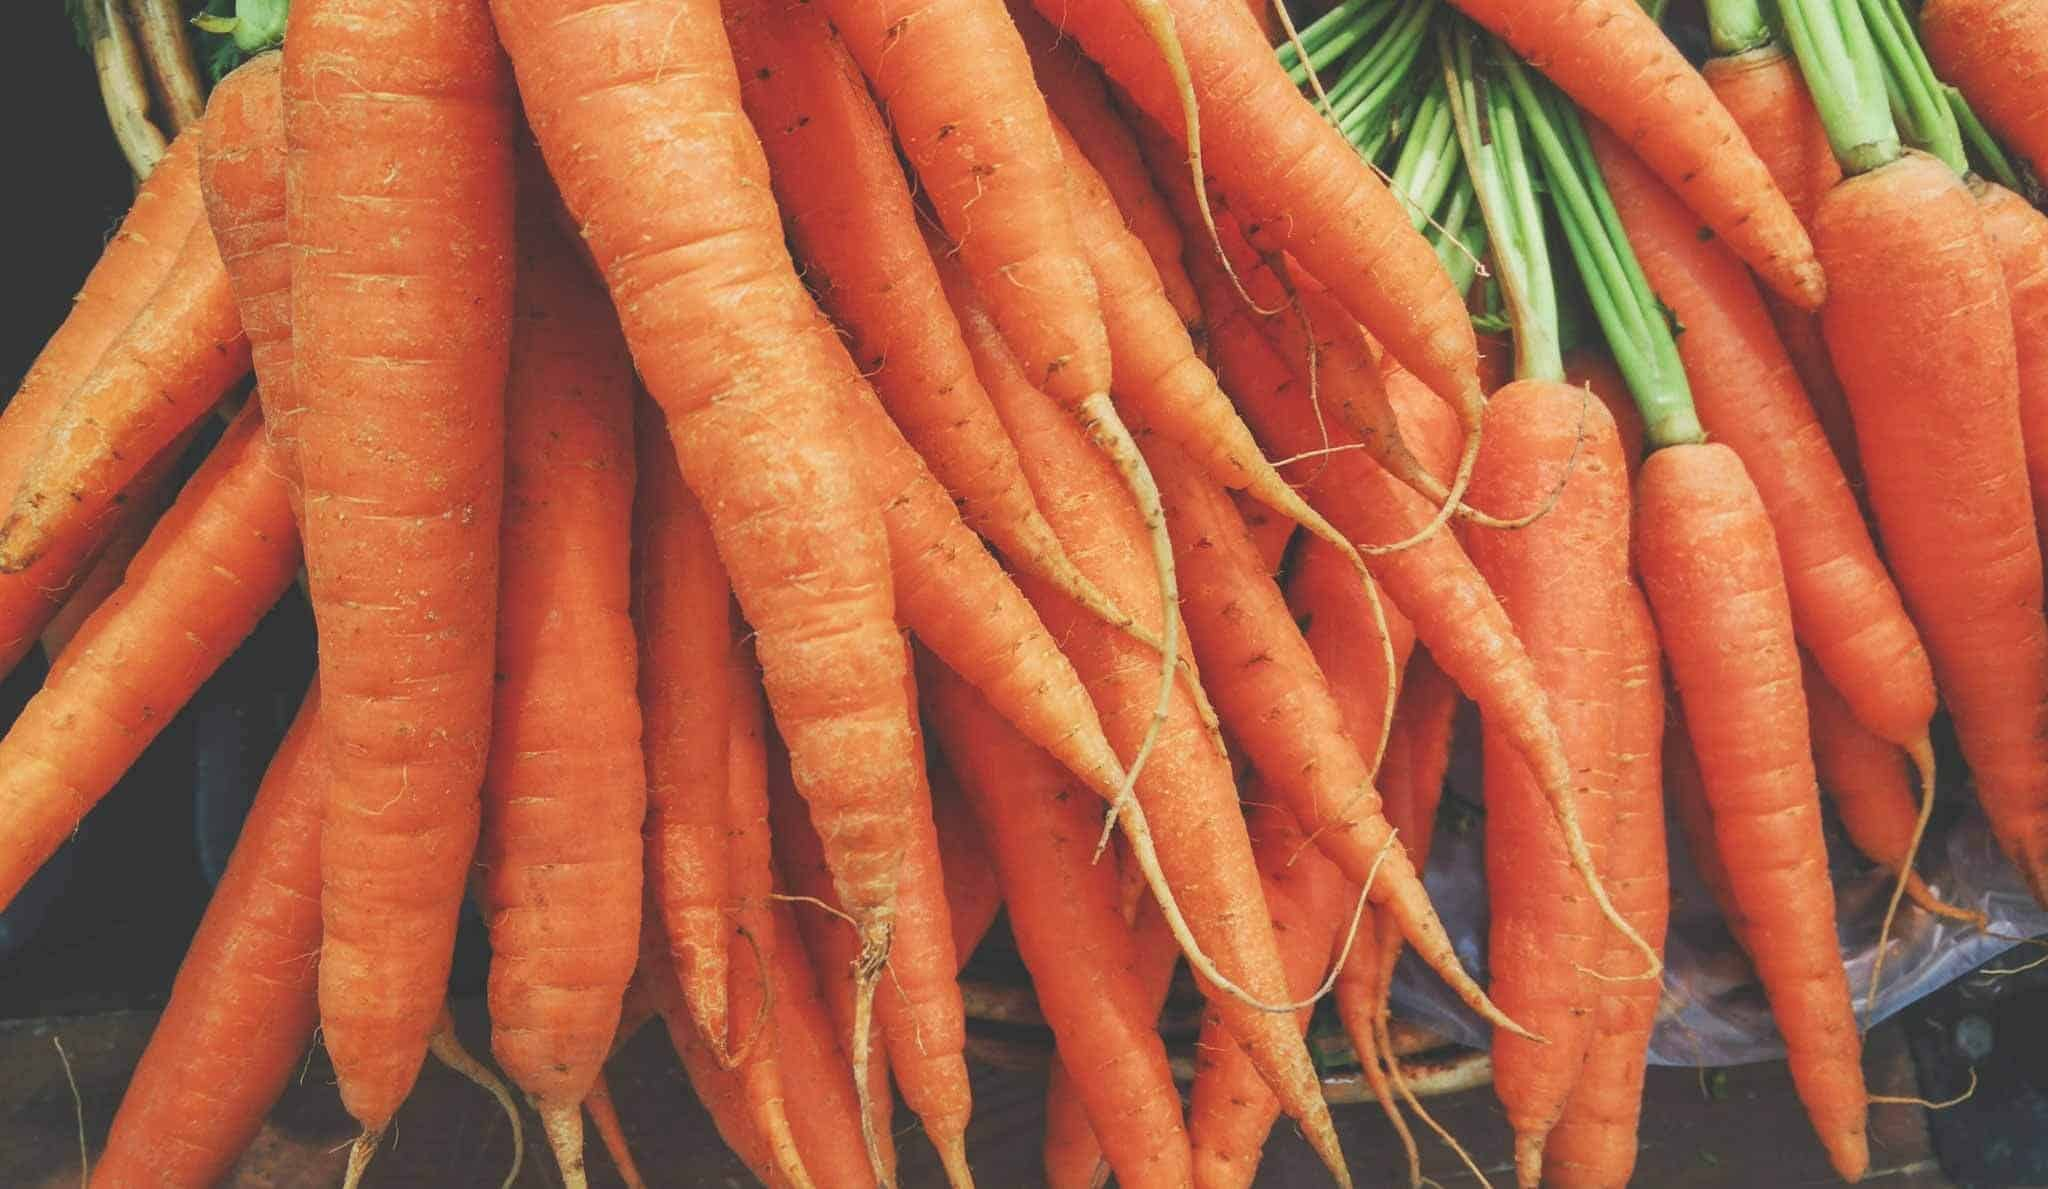 Raw-carrots-are-a-fantastic-vegetable-to-help-clean-your-dogs-teeth